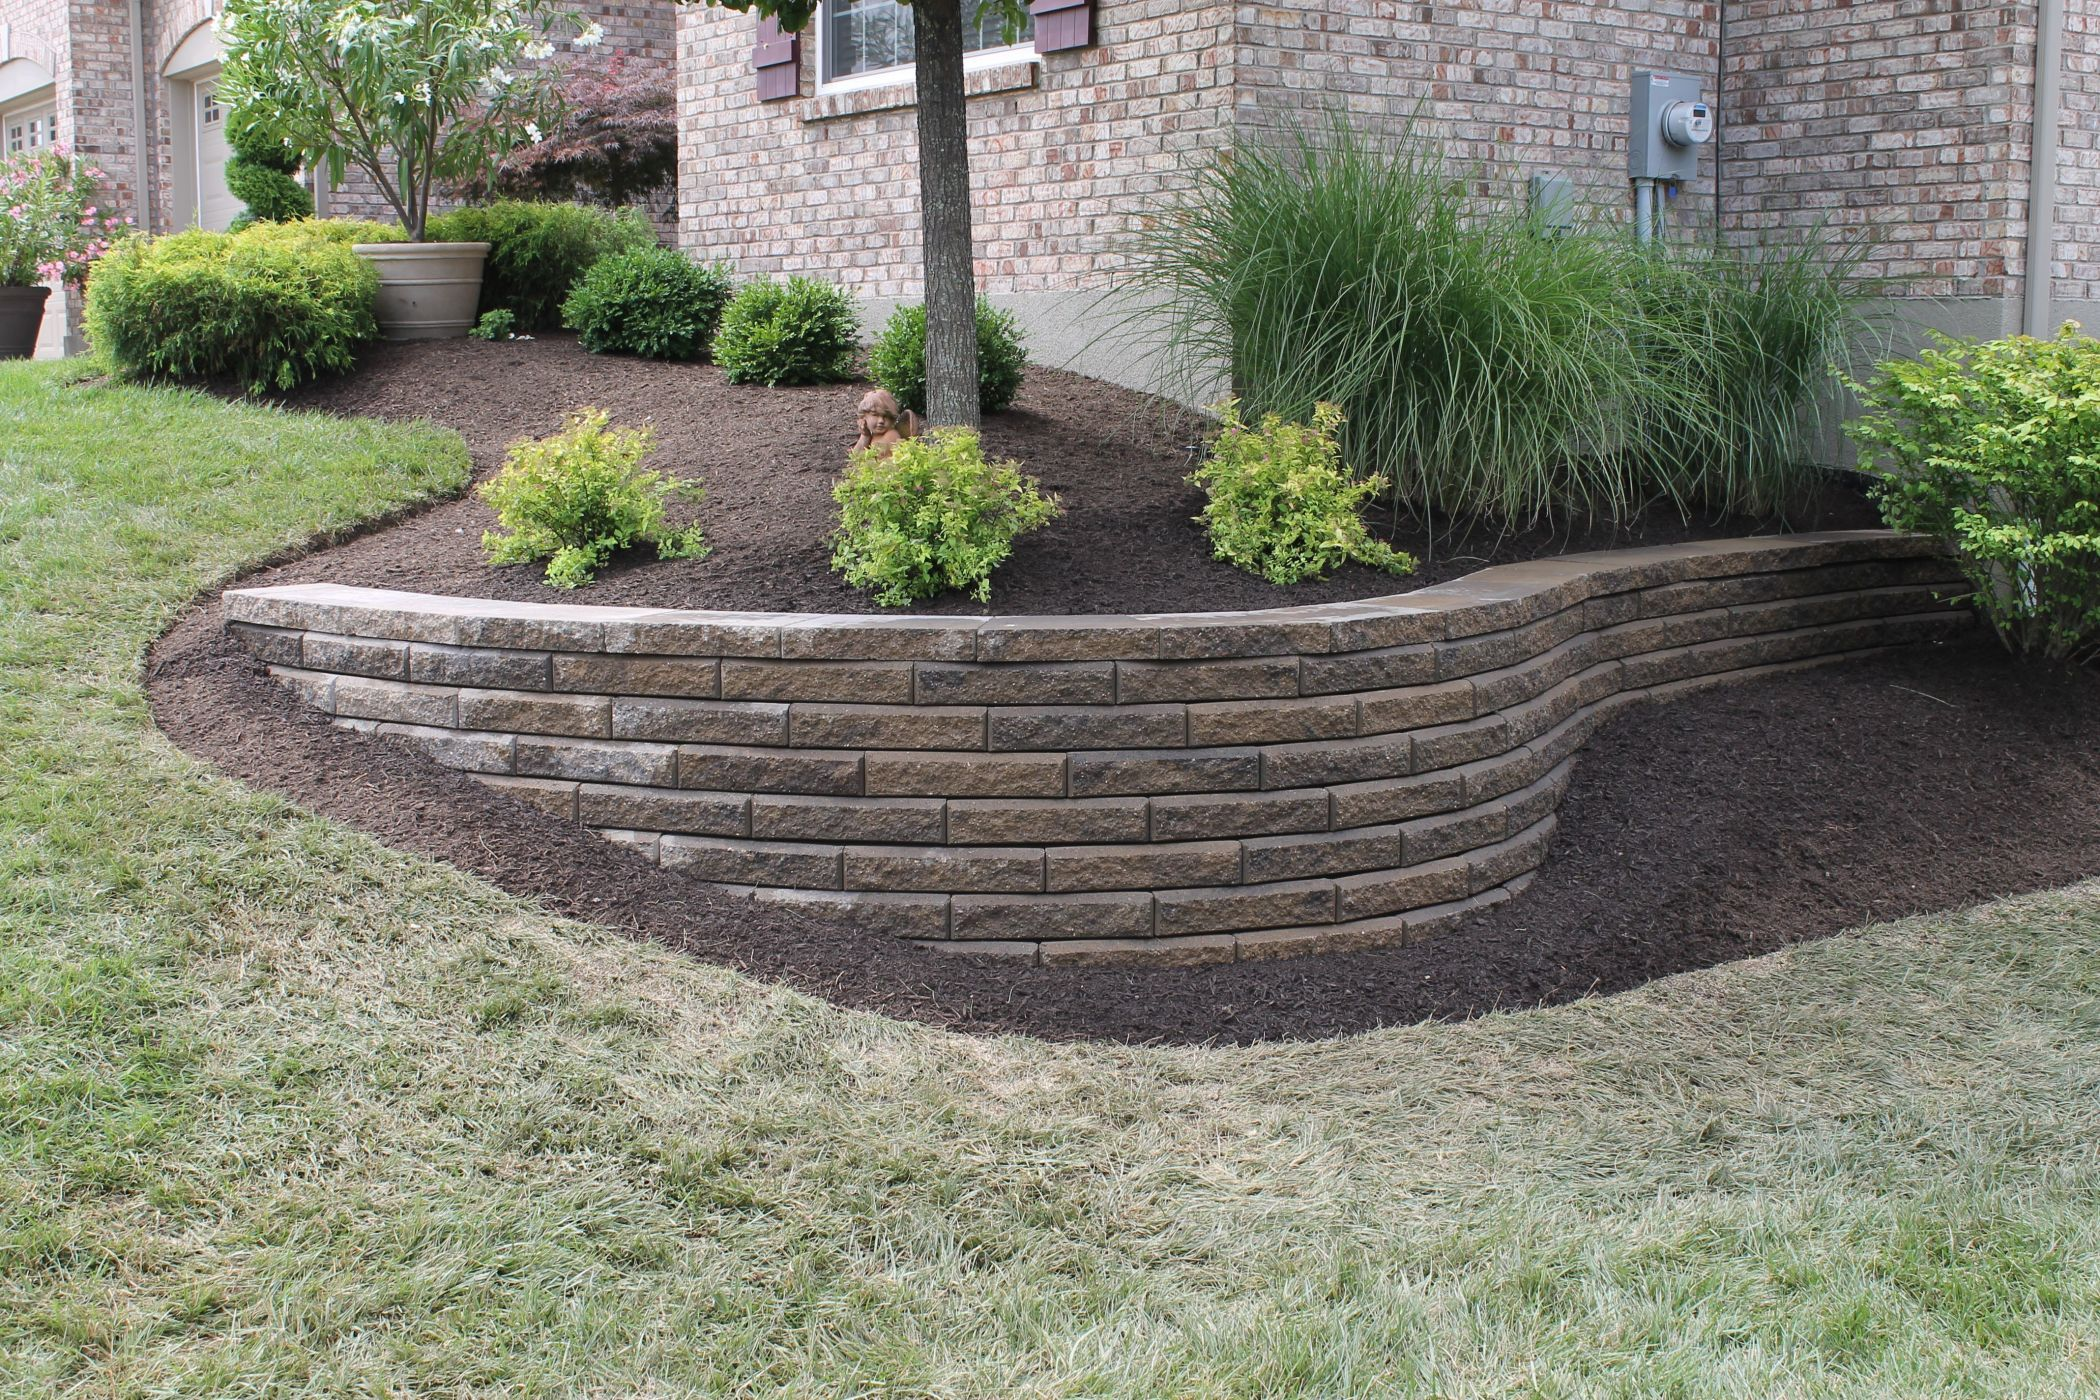 35 Inspiring Retaining Wall Ideas Uses That Will Blow Your Mind